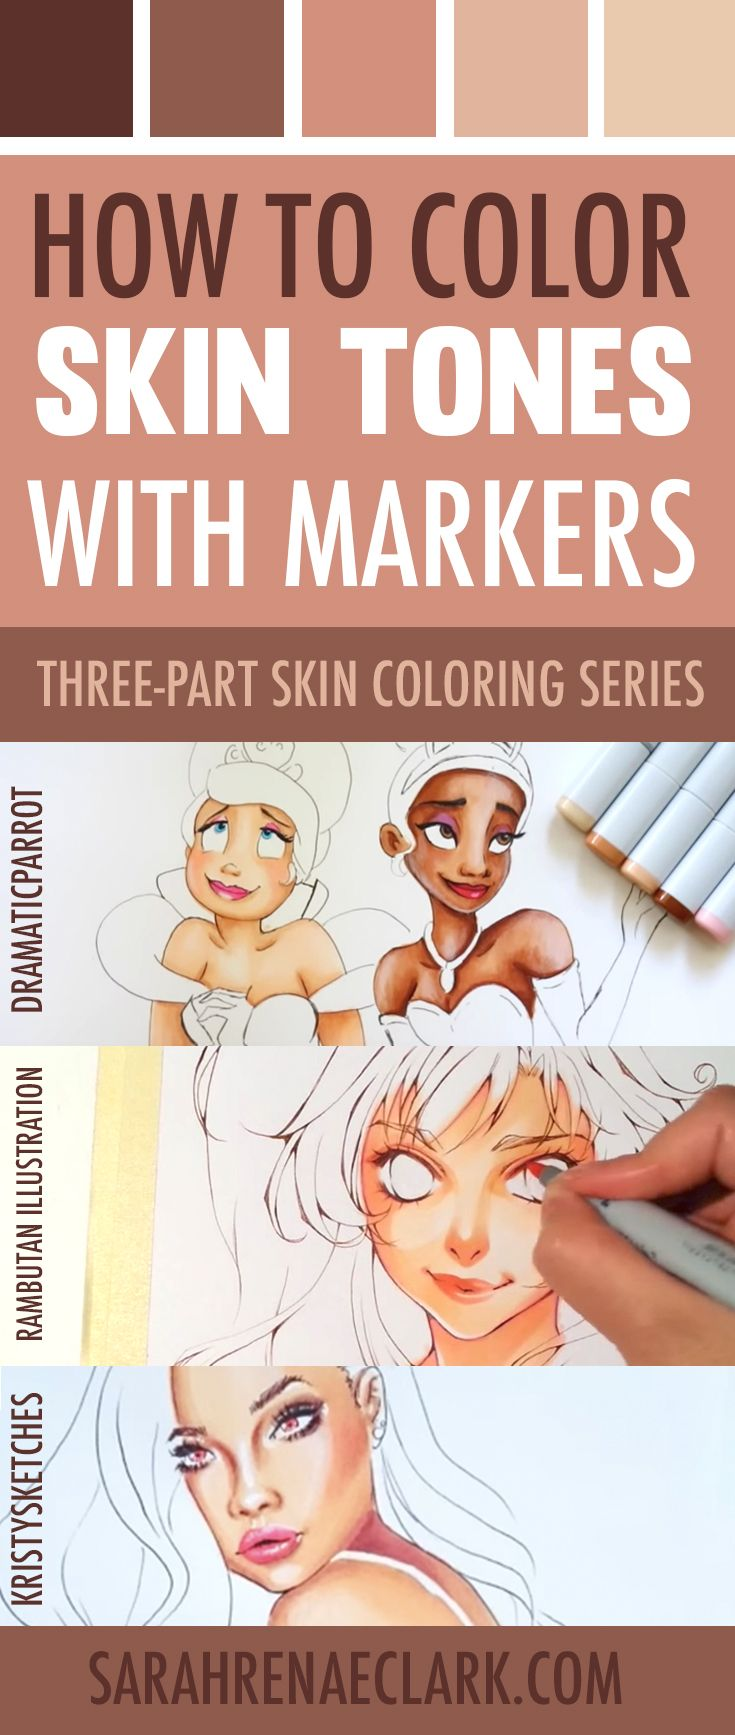 How to Color Skin Tones | Colored pencils, Markers and Clarks